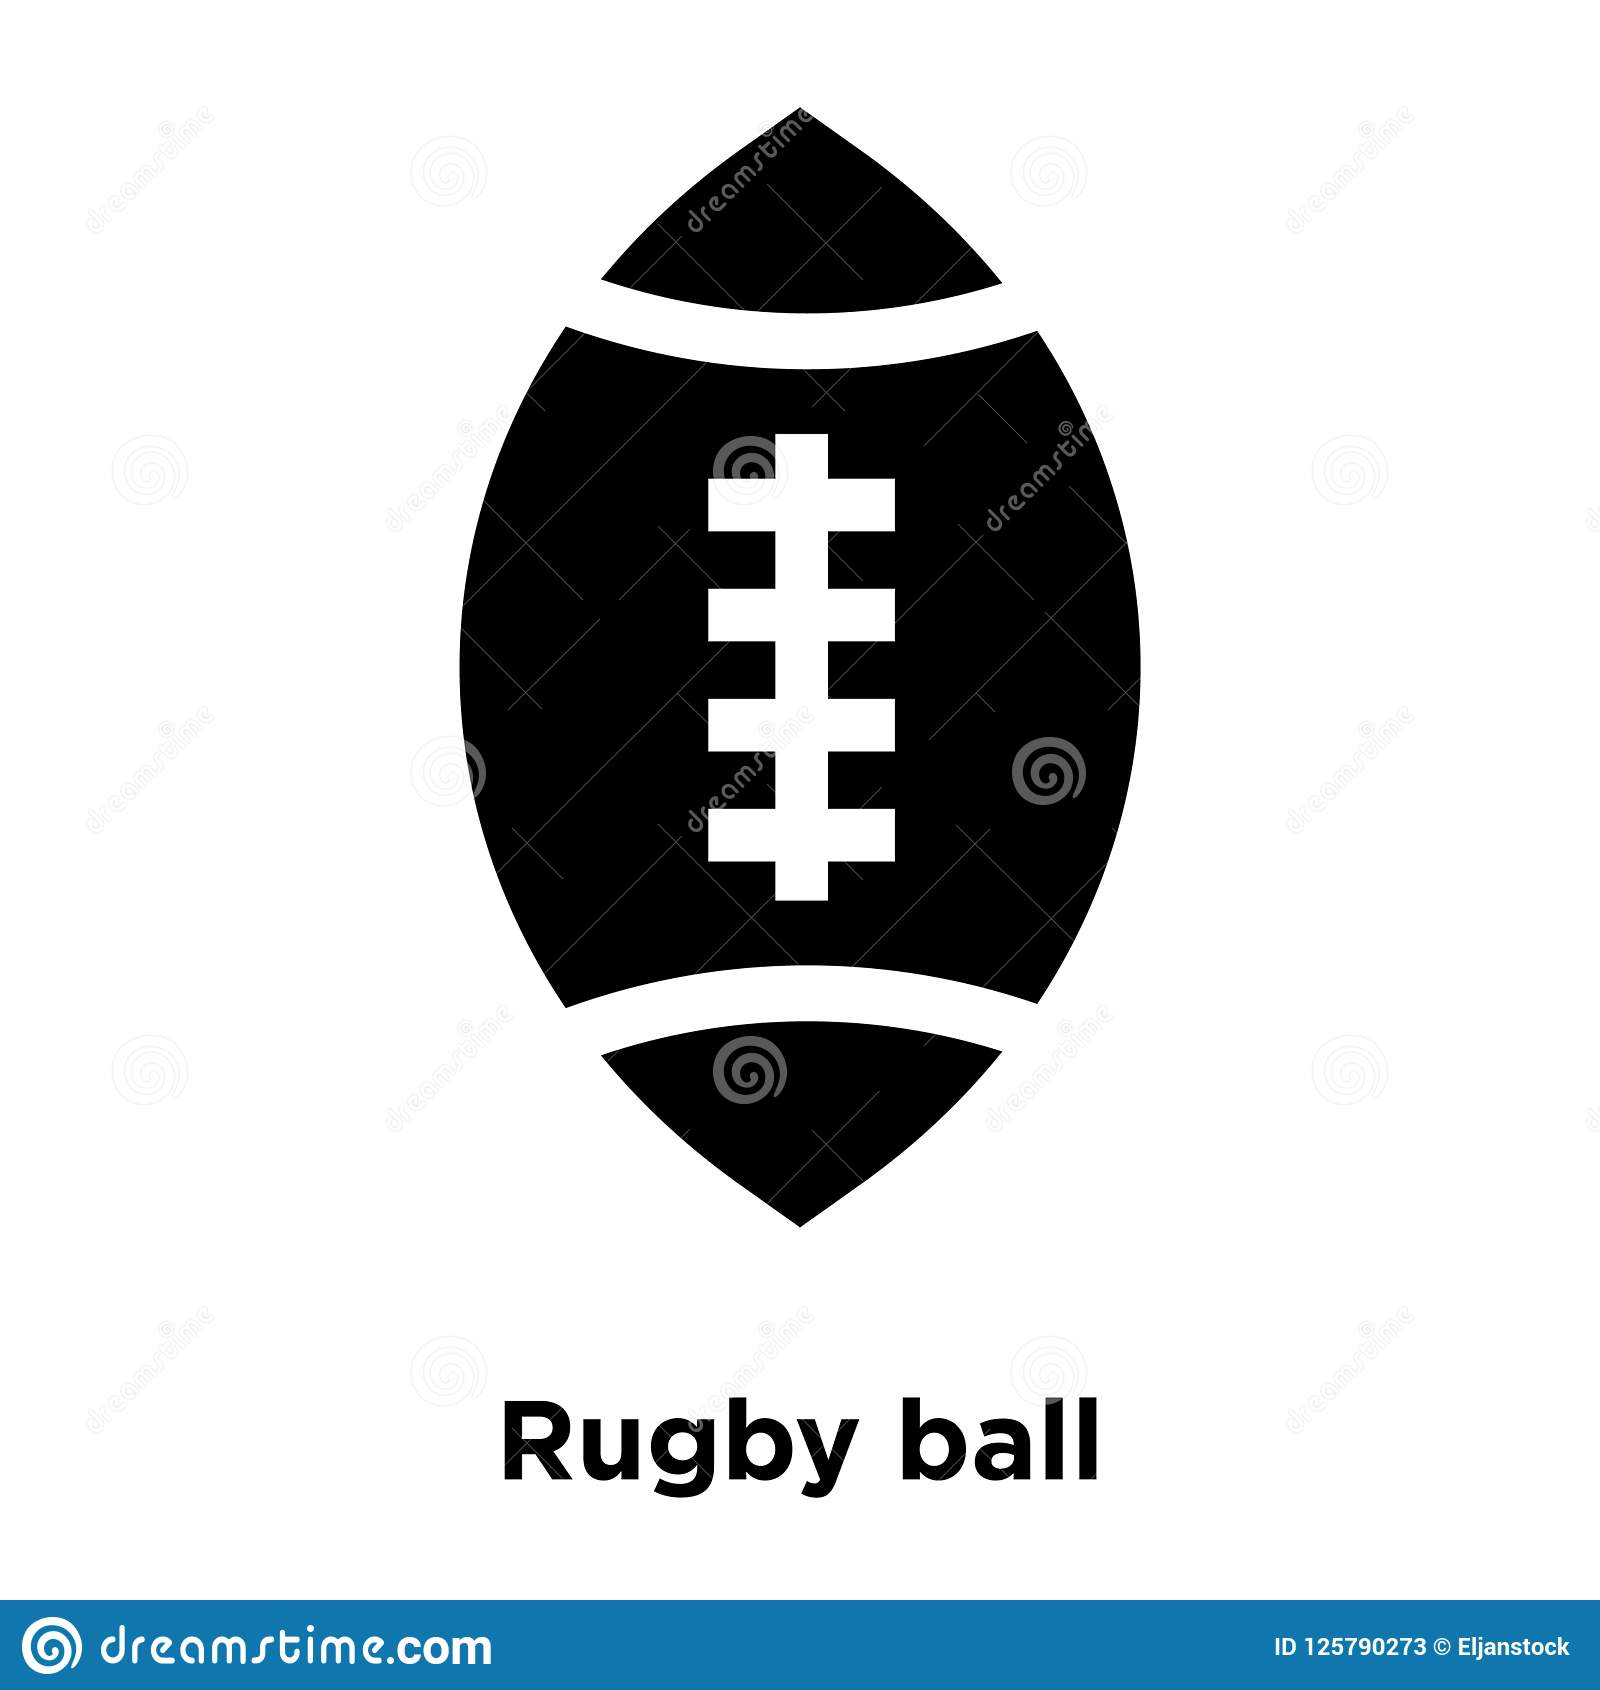 Rugby ball icon vector isolated on white background, logo concept of Rugby ball sign on transparent background, black filled